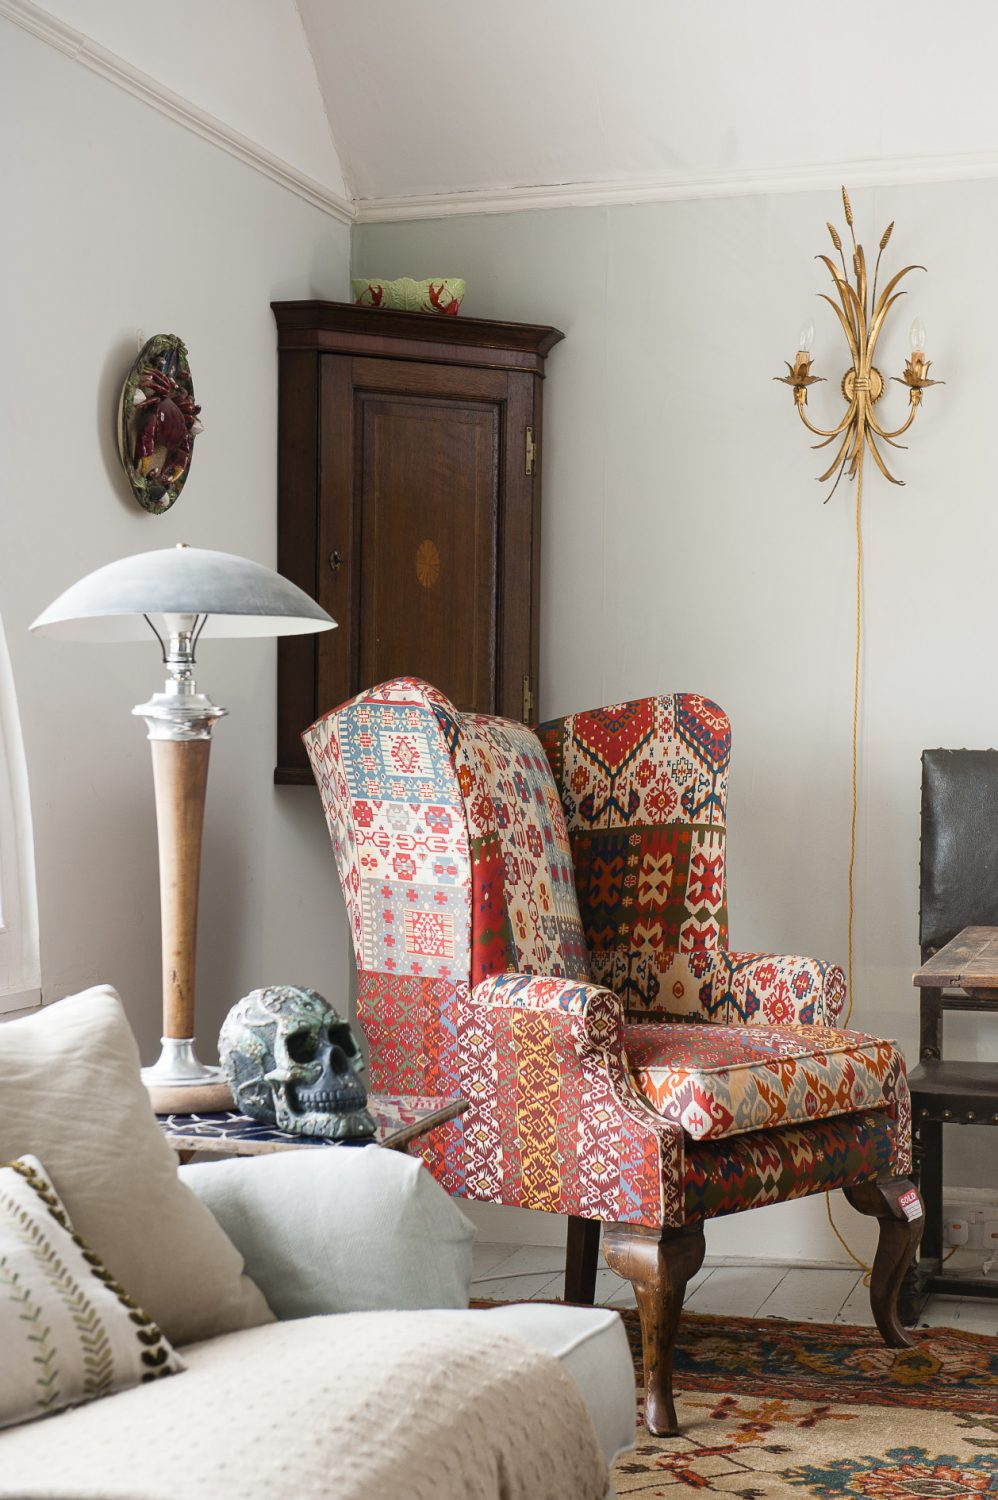 An armchair upholstered in a patchwork of Ikat provides the perfect place to sink into after a day at the seaside